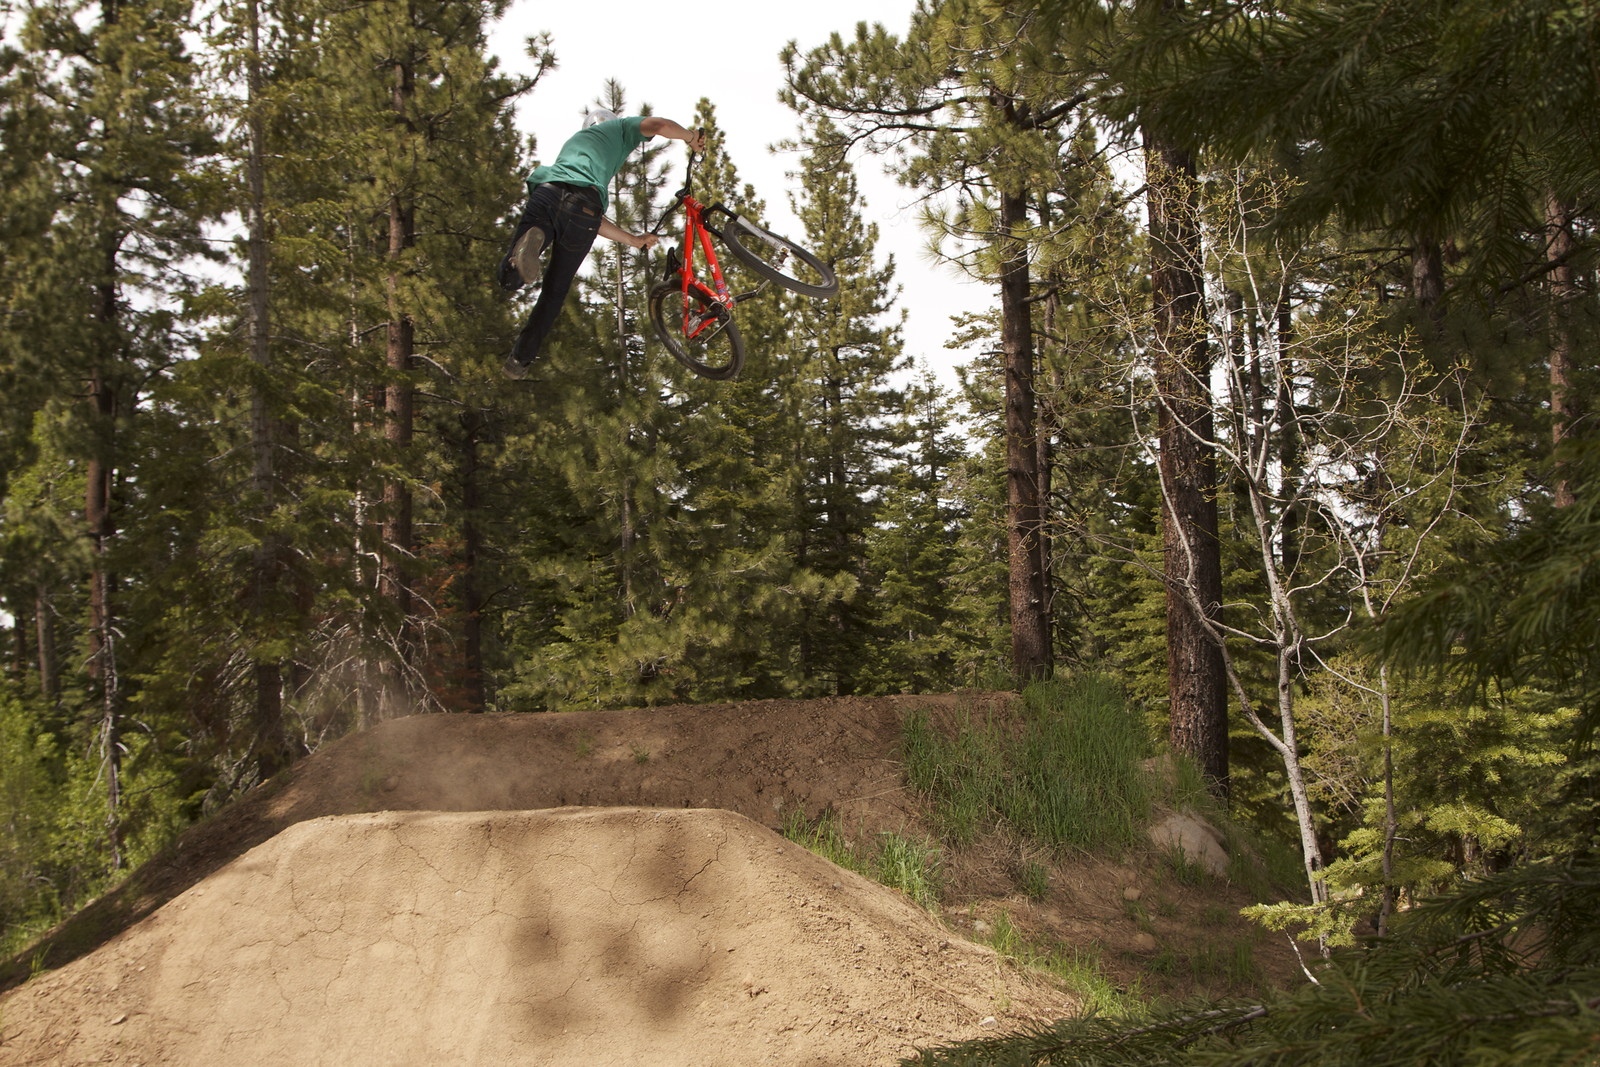 Tailwhip at Northstar - Christian - Mountain Biking Pictures - Vital MTB